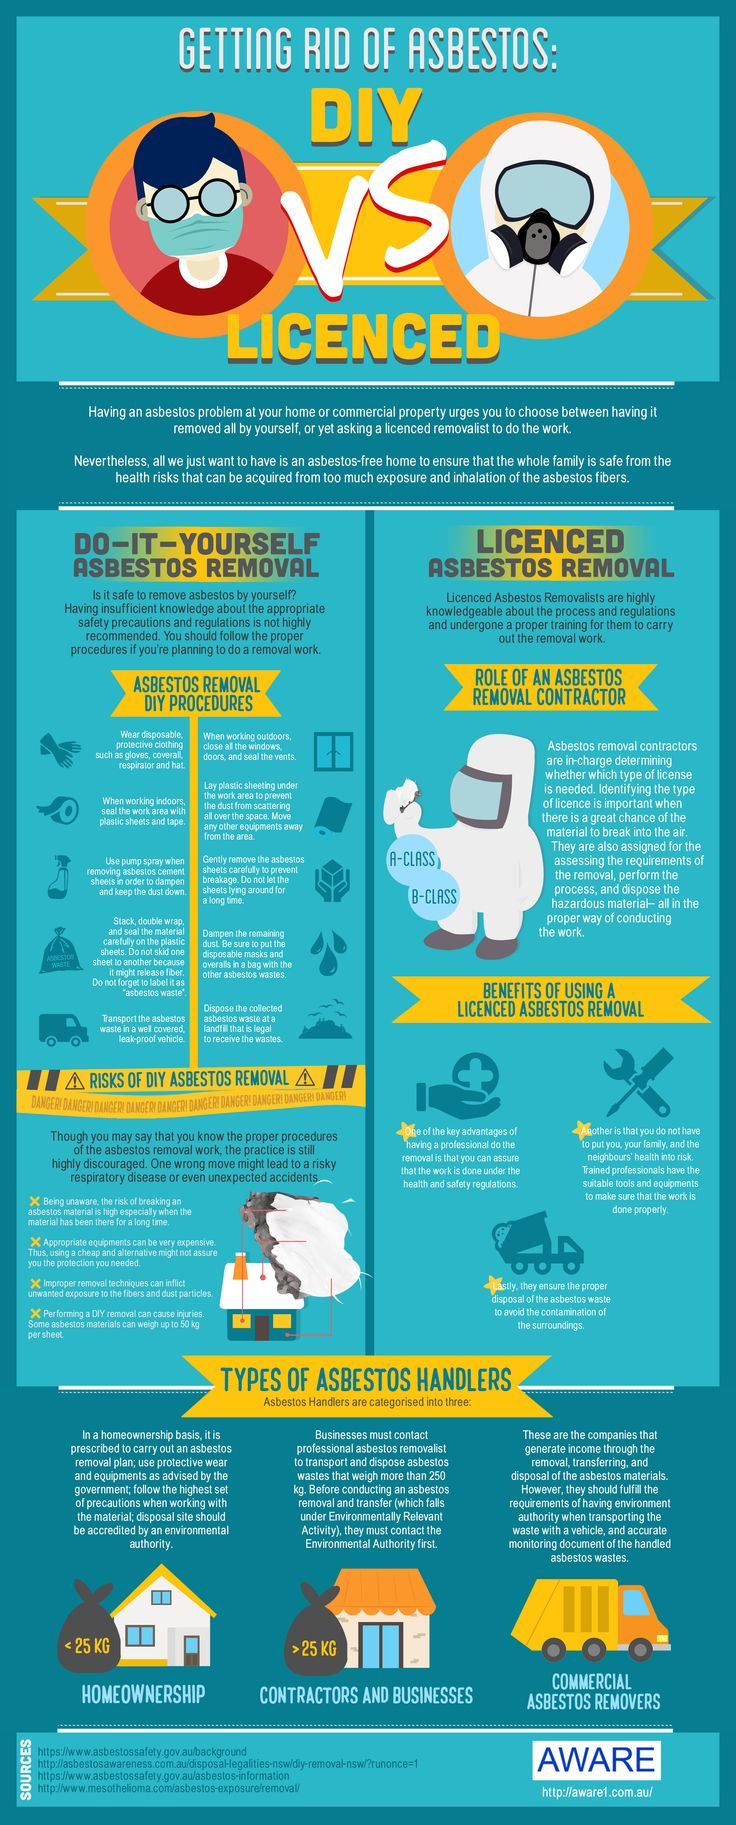 Getting Rid of Asbestos: DIY vs Licenced #infographic #health #asbestos